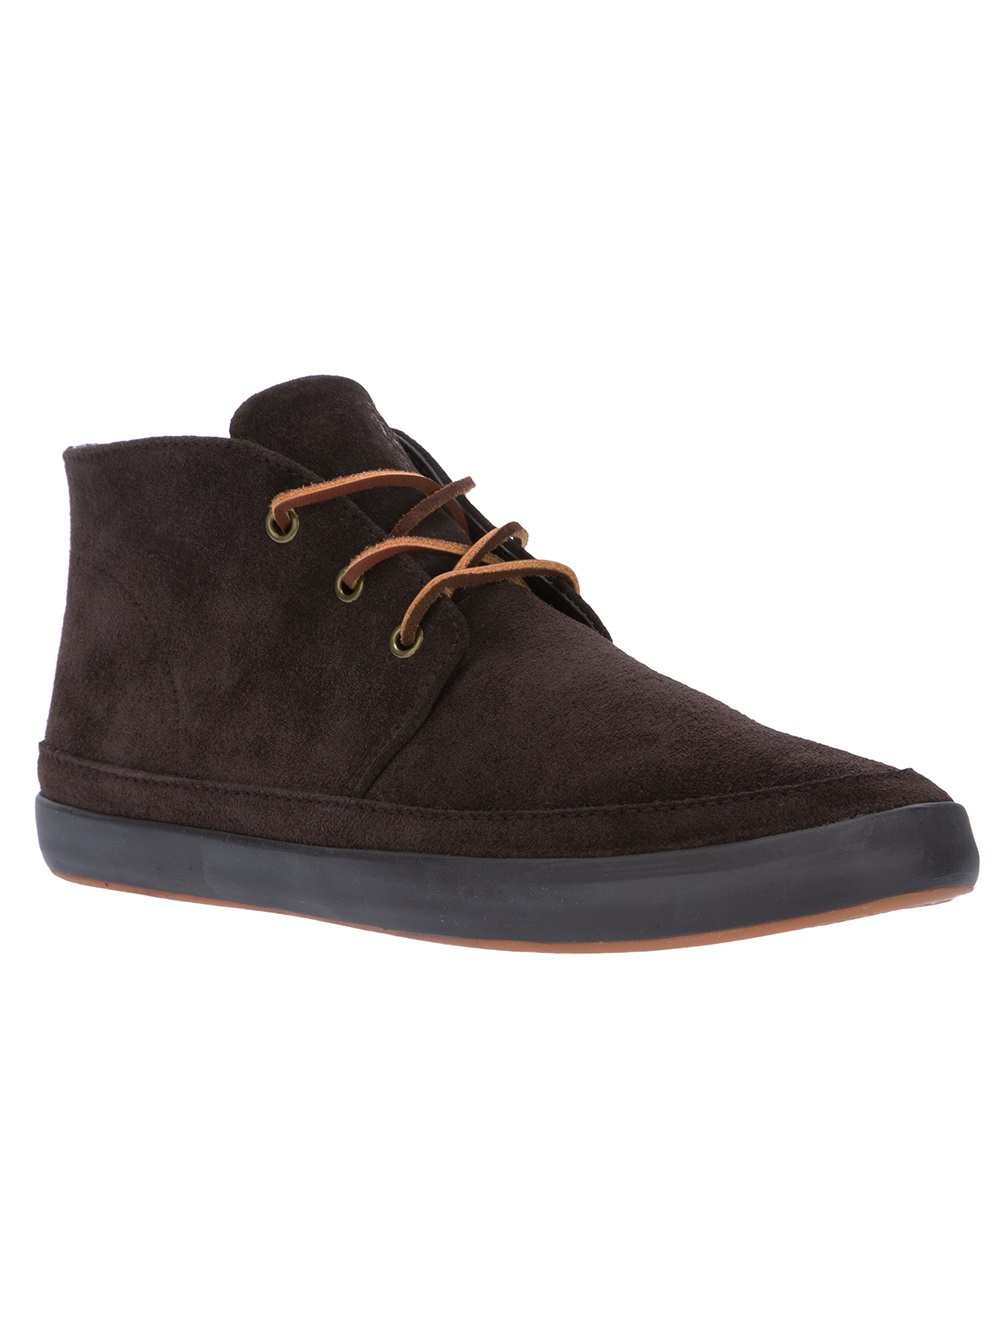 polo ralph lauren 39 erwin 39 ankle boot in brown for men lyst. Black Bedroom Furniture Sets. Home Design Ideas